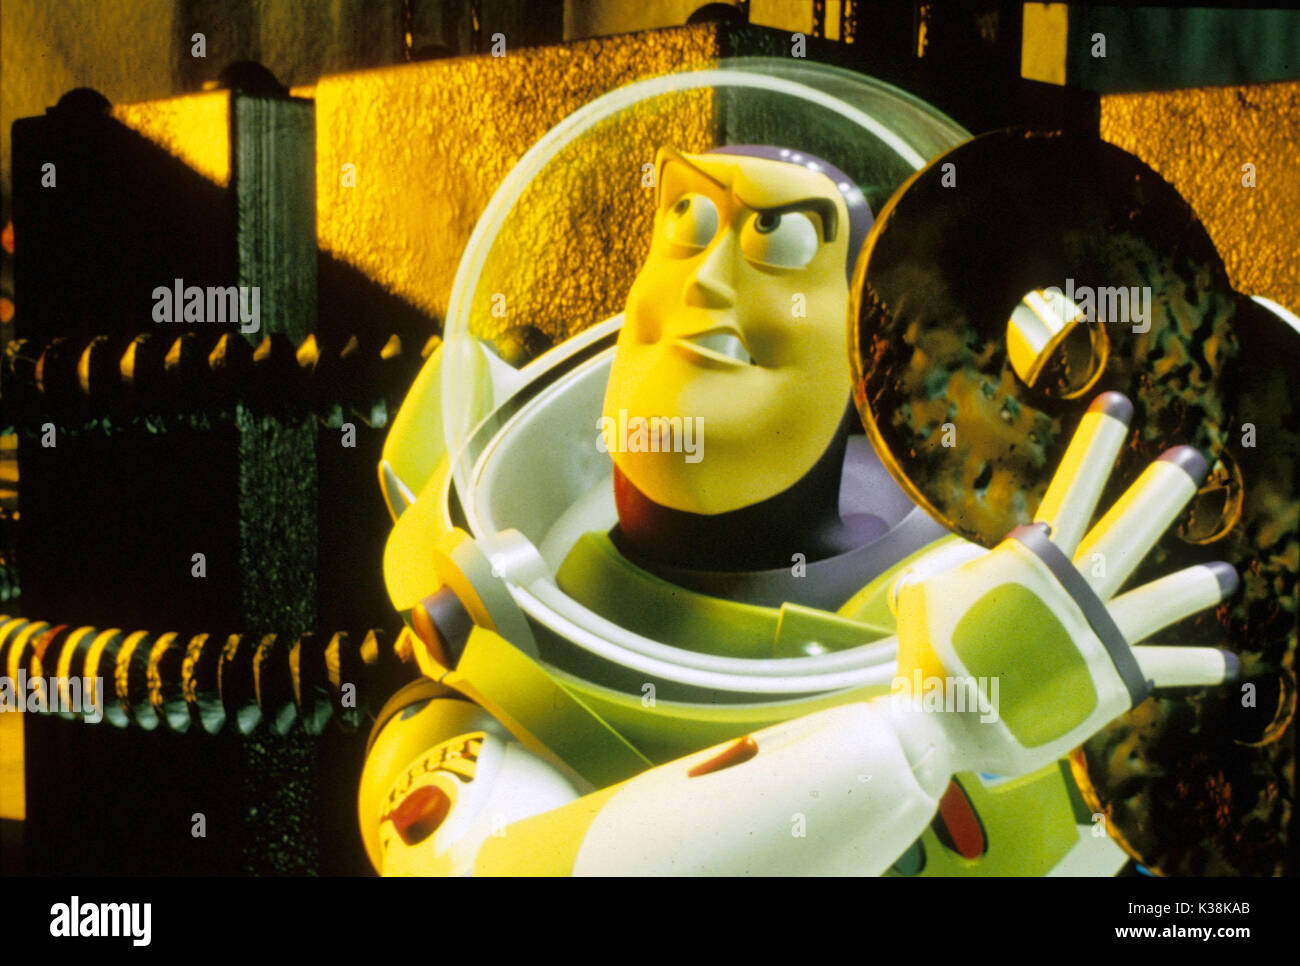 Pixar Disney Stock Photos & Pixar Disney Stock Images - Alamy